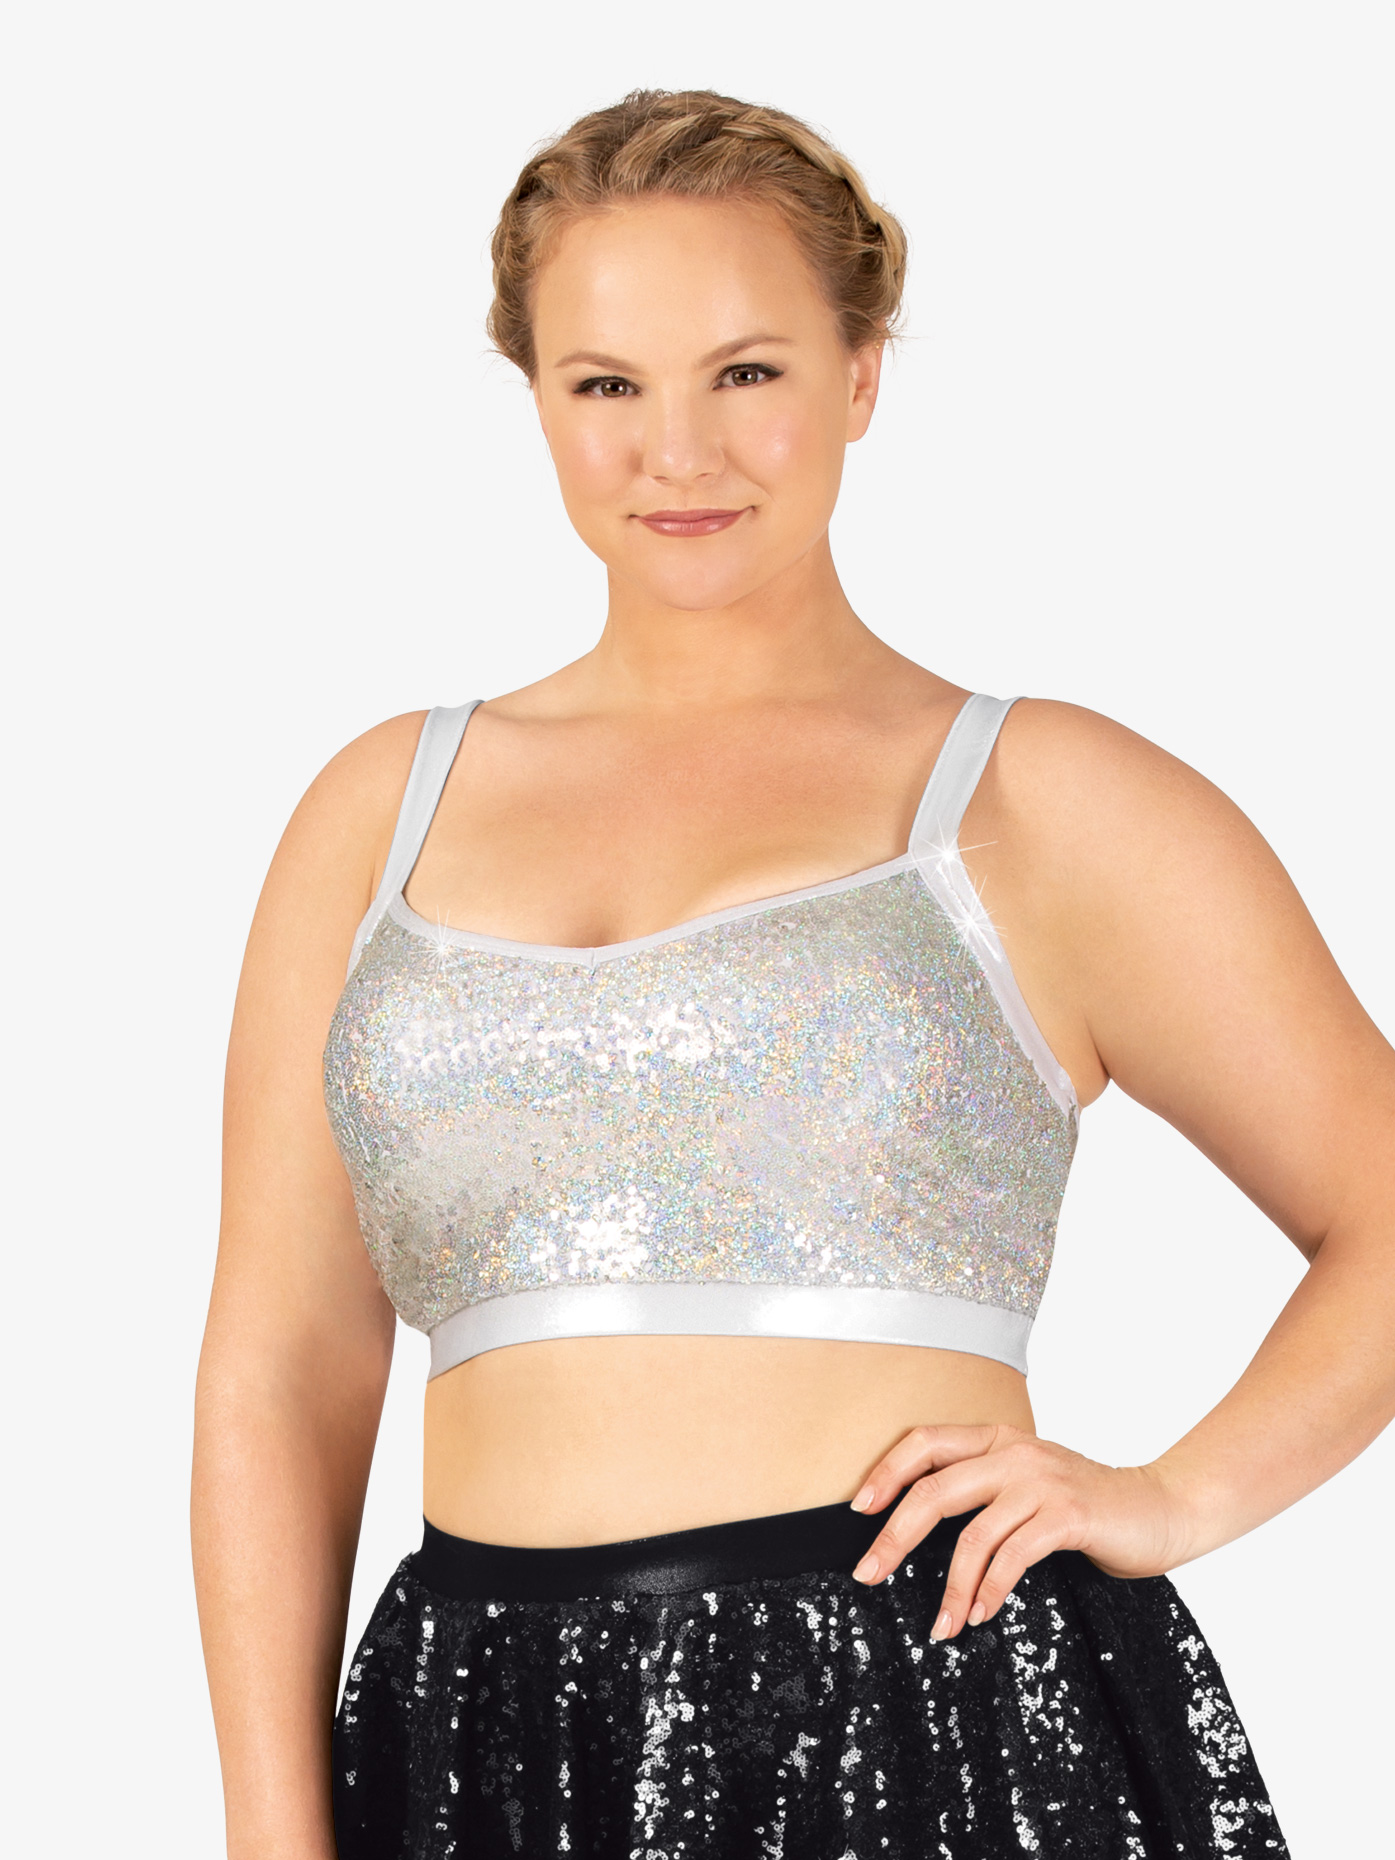 Double Platinum Womens Plus Size Sequin Tank Performance Bra Top N7380P